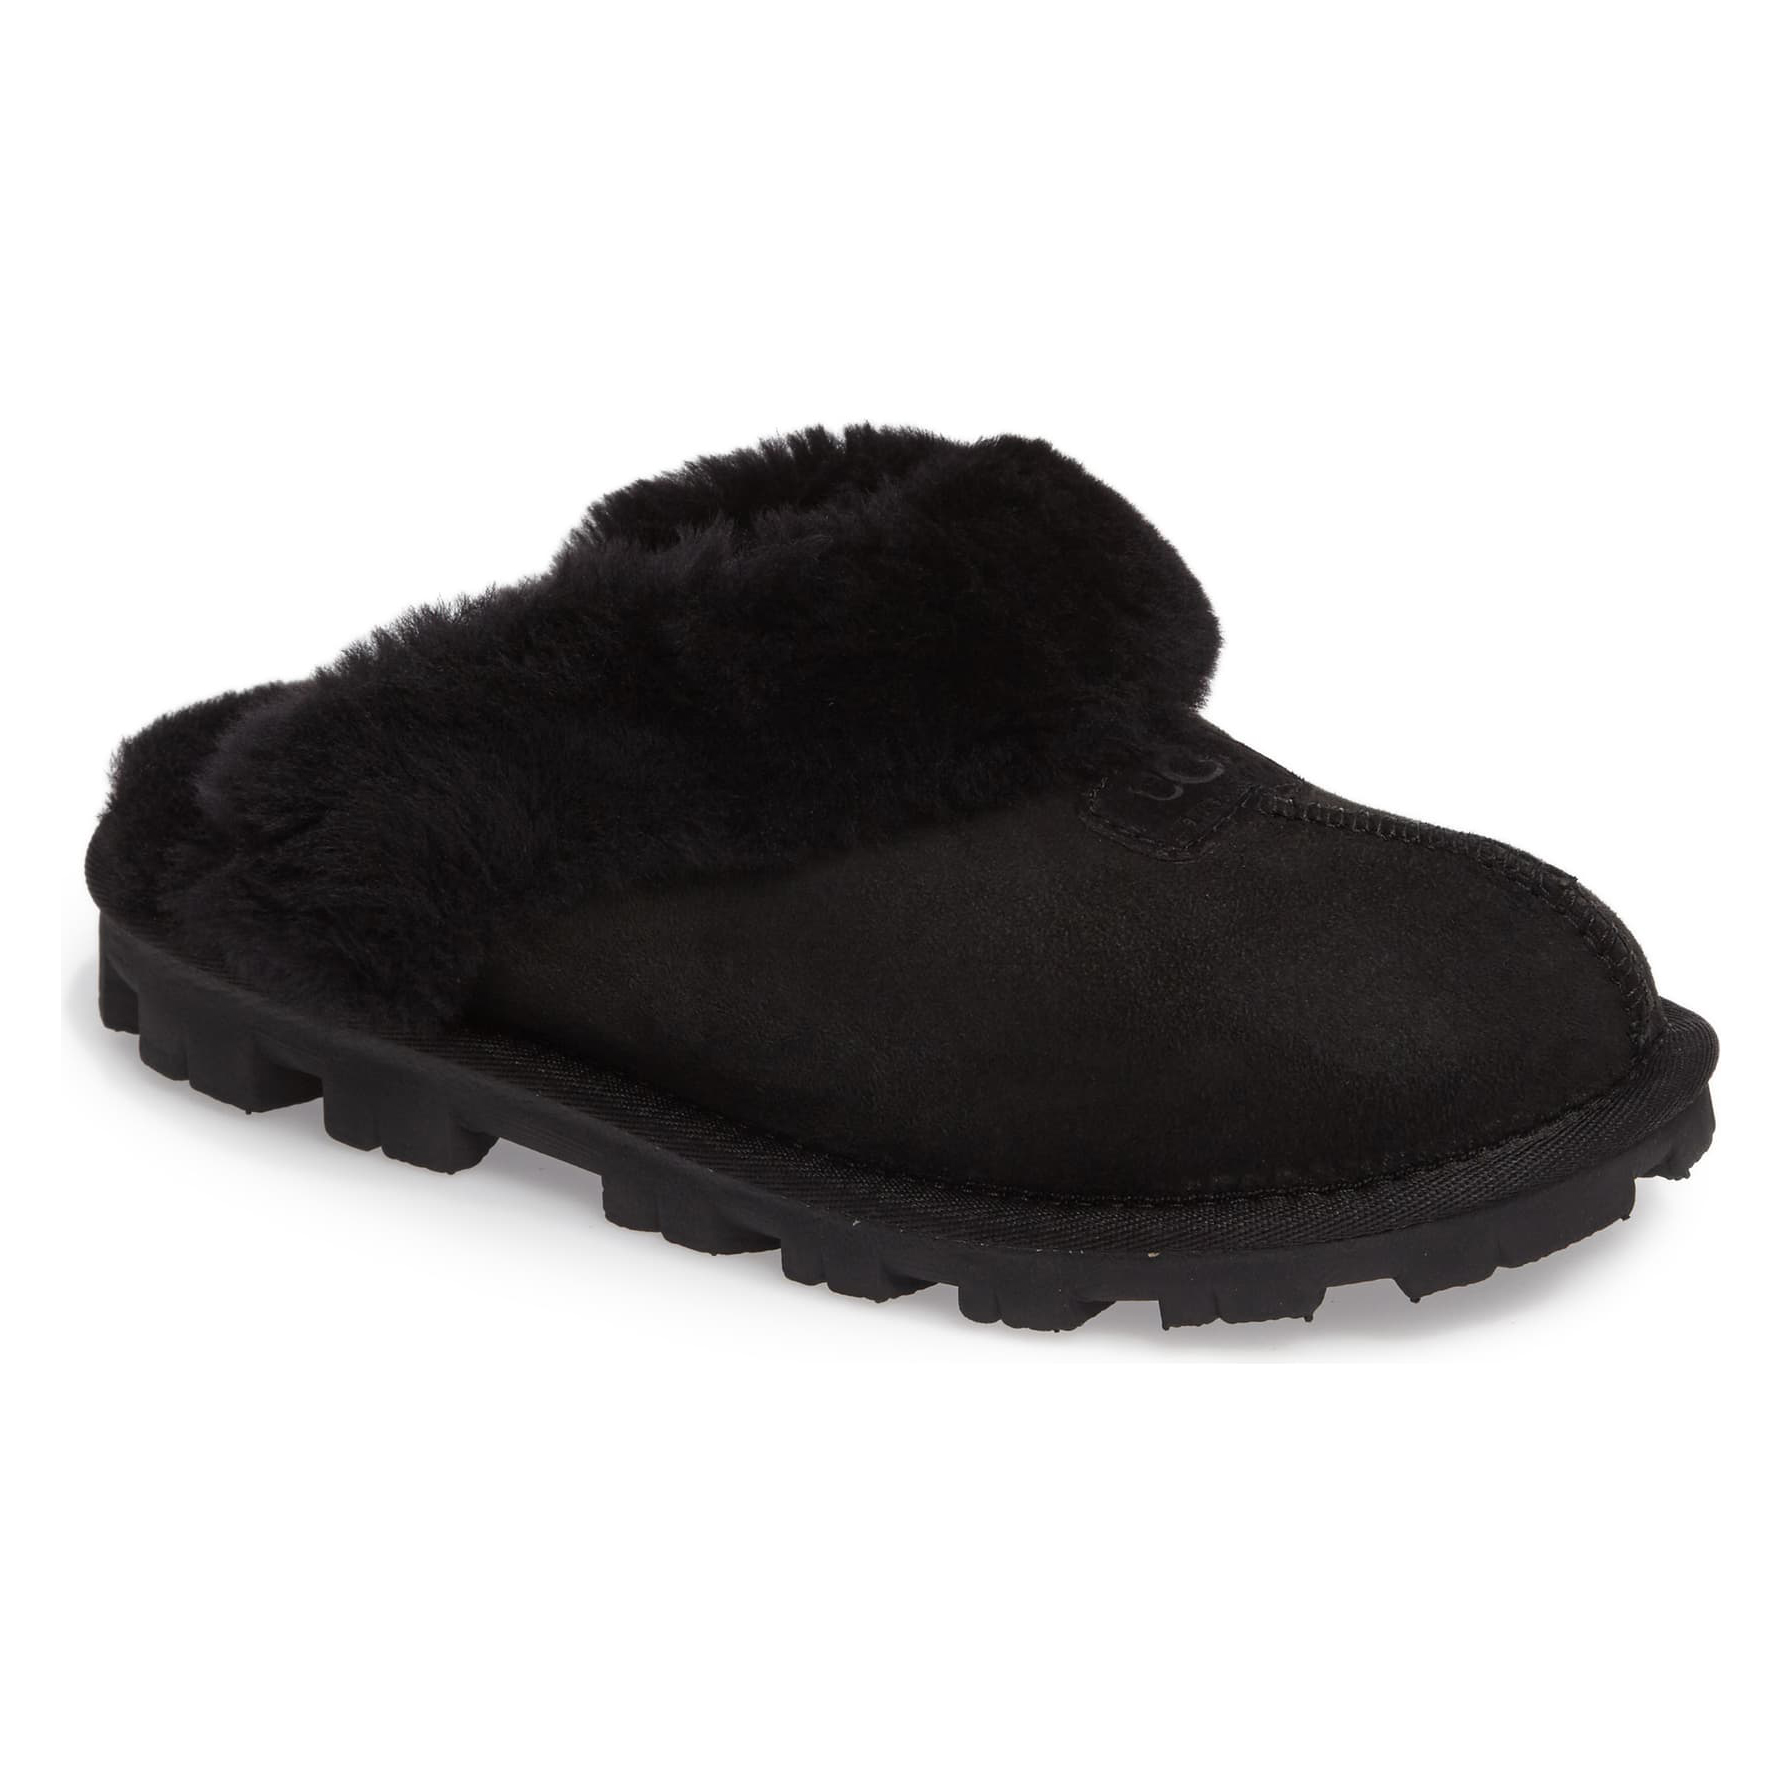 Ugg Genuine Shearling Slipper in Black